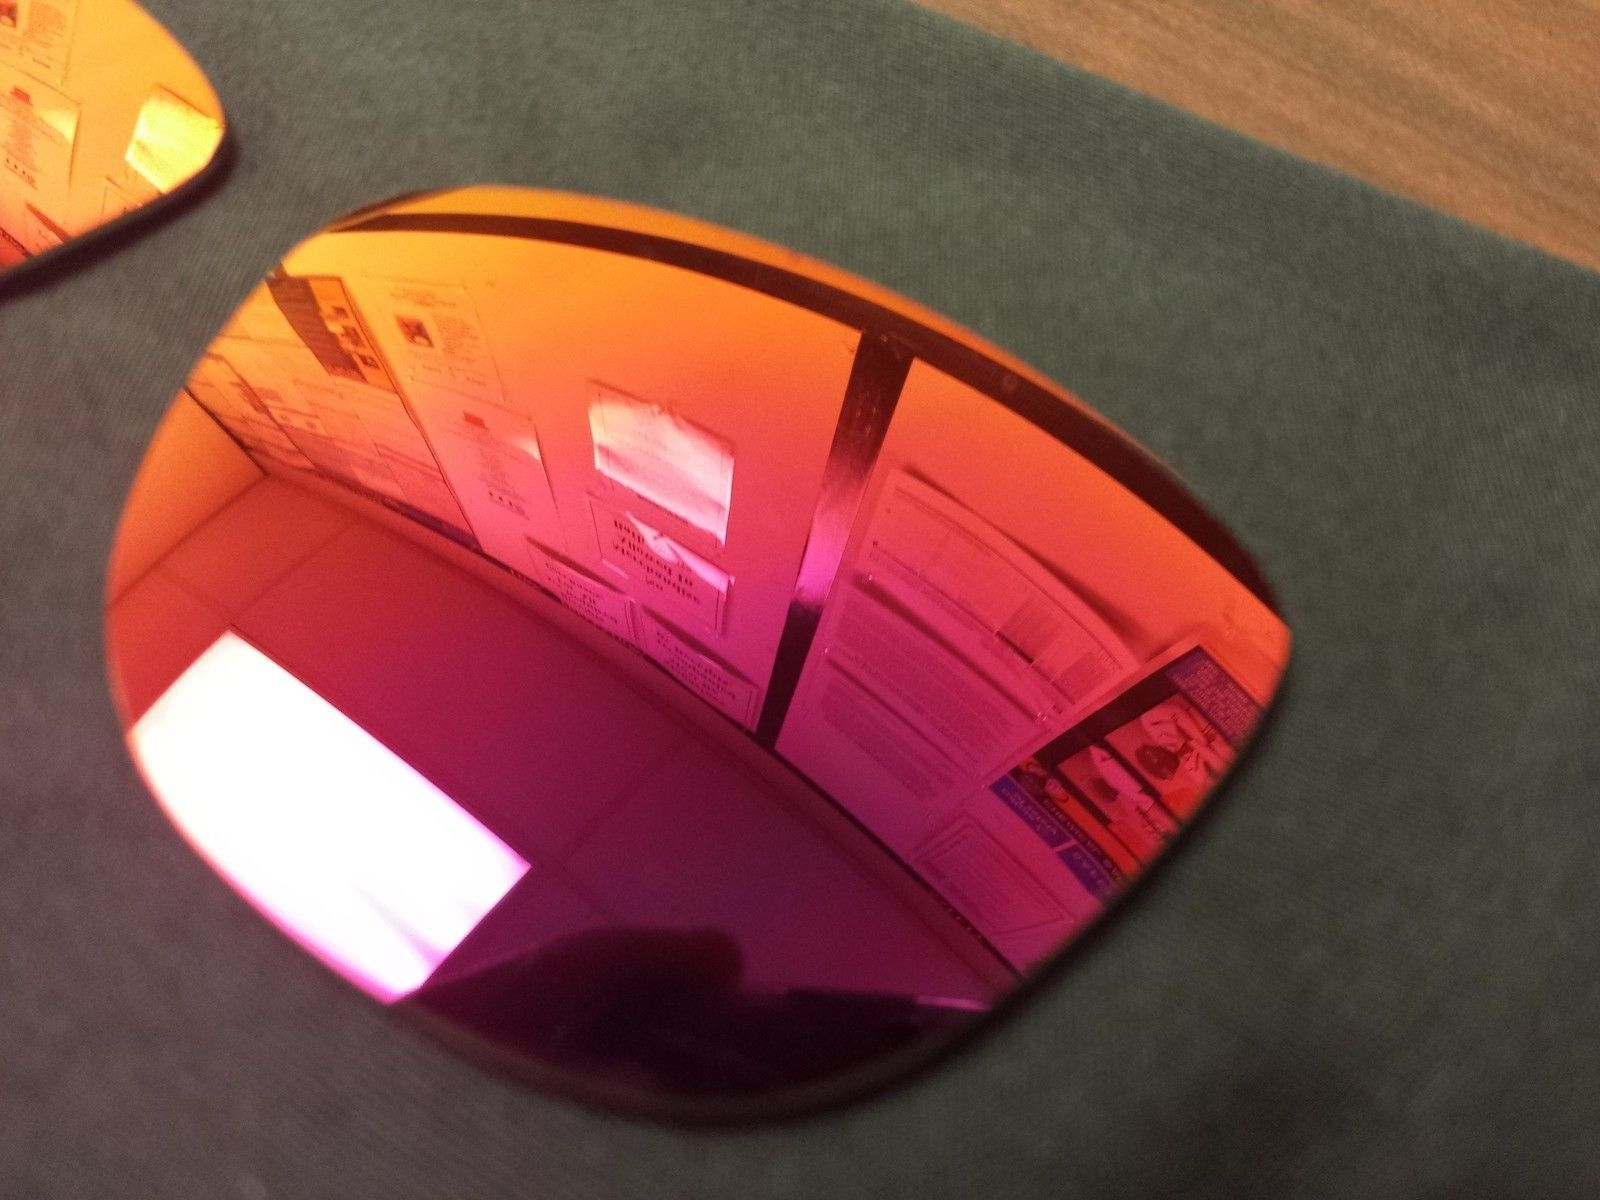 FSOT Ruby Frog Lenses - uploadfromtaptalk1435764647588.jpg